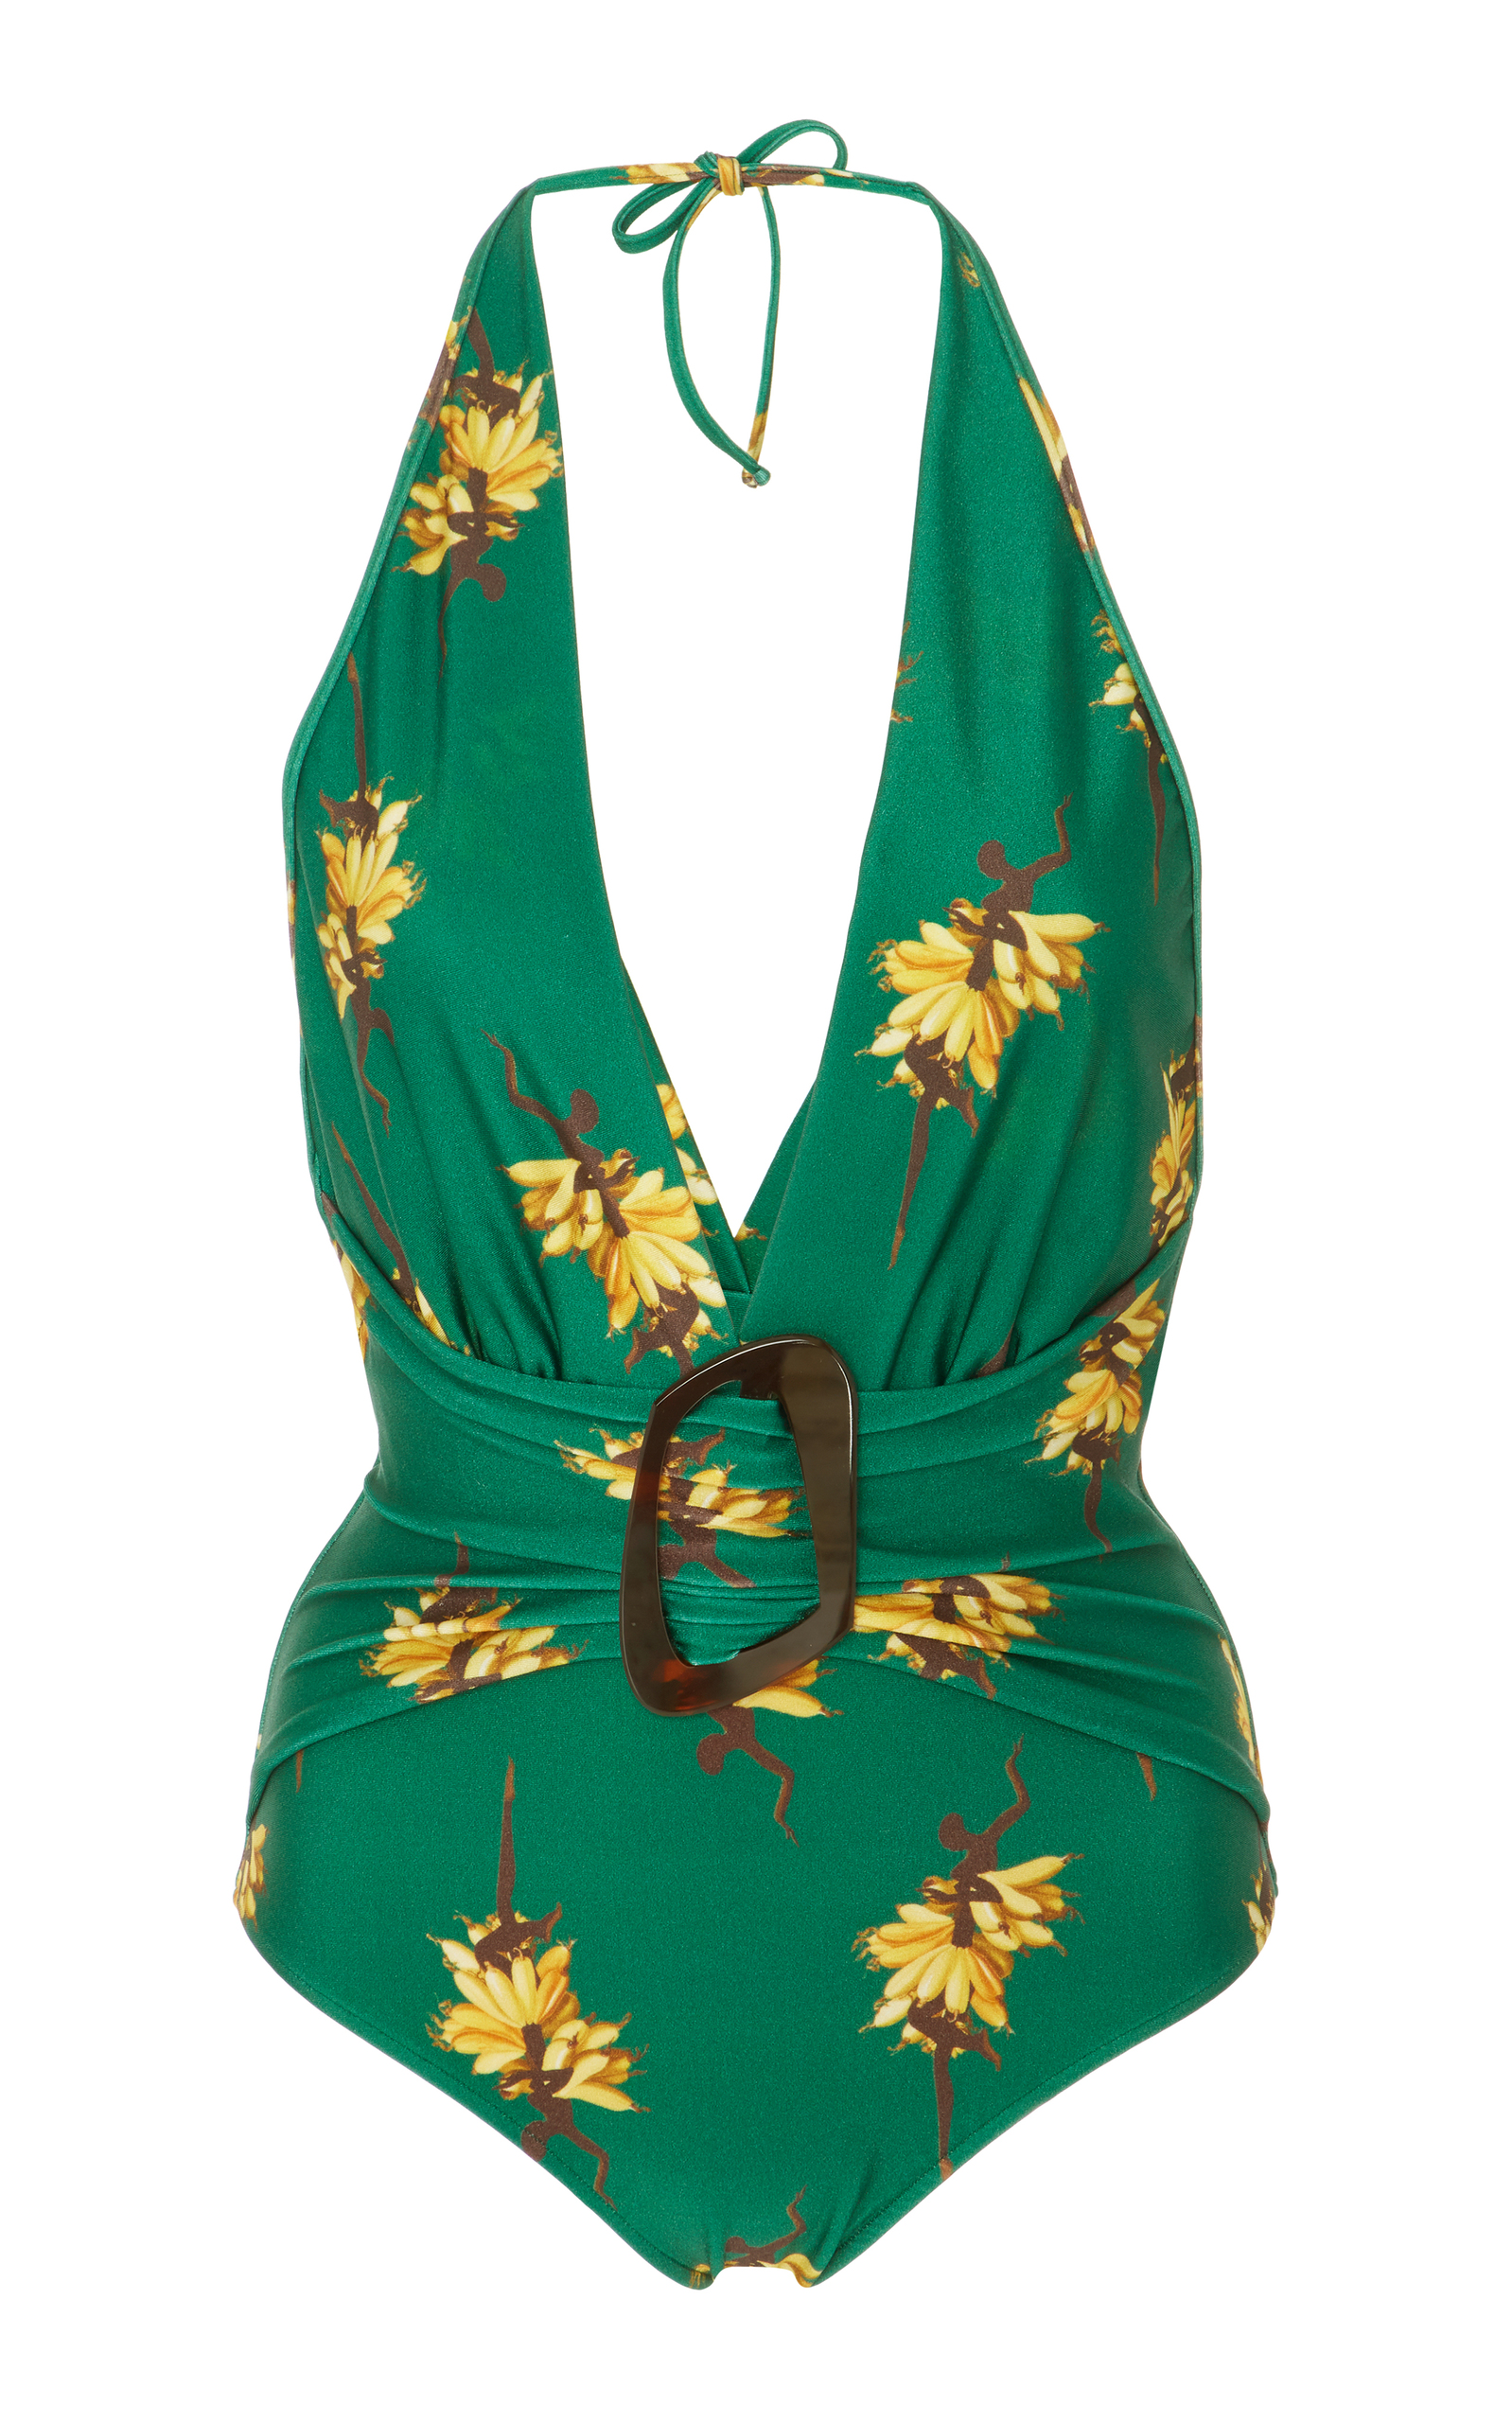 Josephine Baker halterneck deep V-neck swimsuit Adriana Degreas From China For Sale Cheap Official Site XN9di